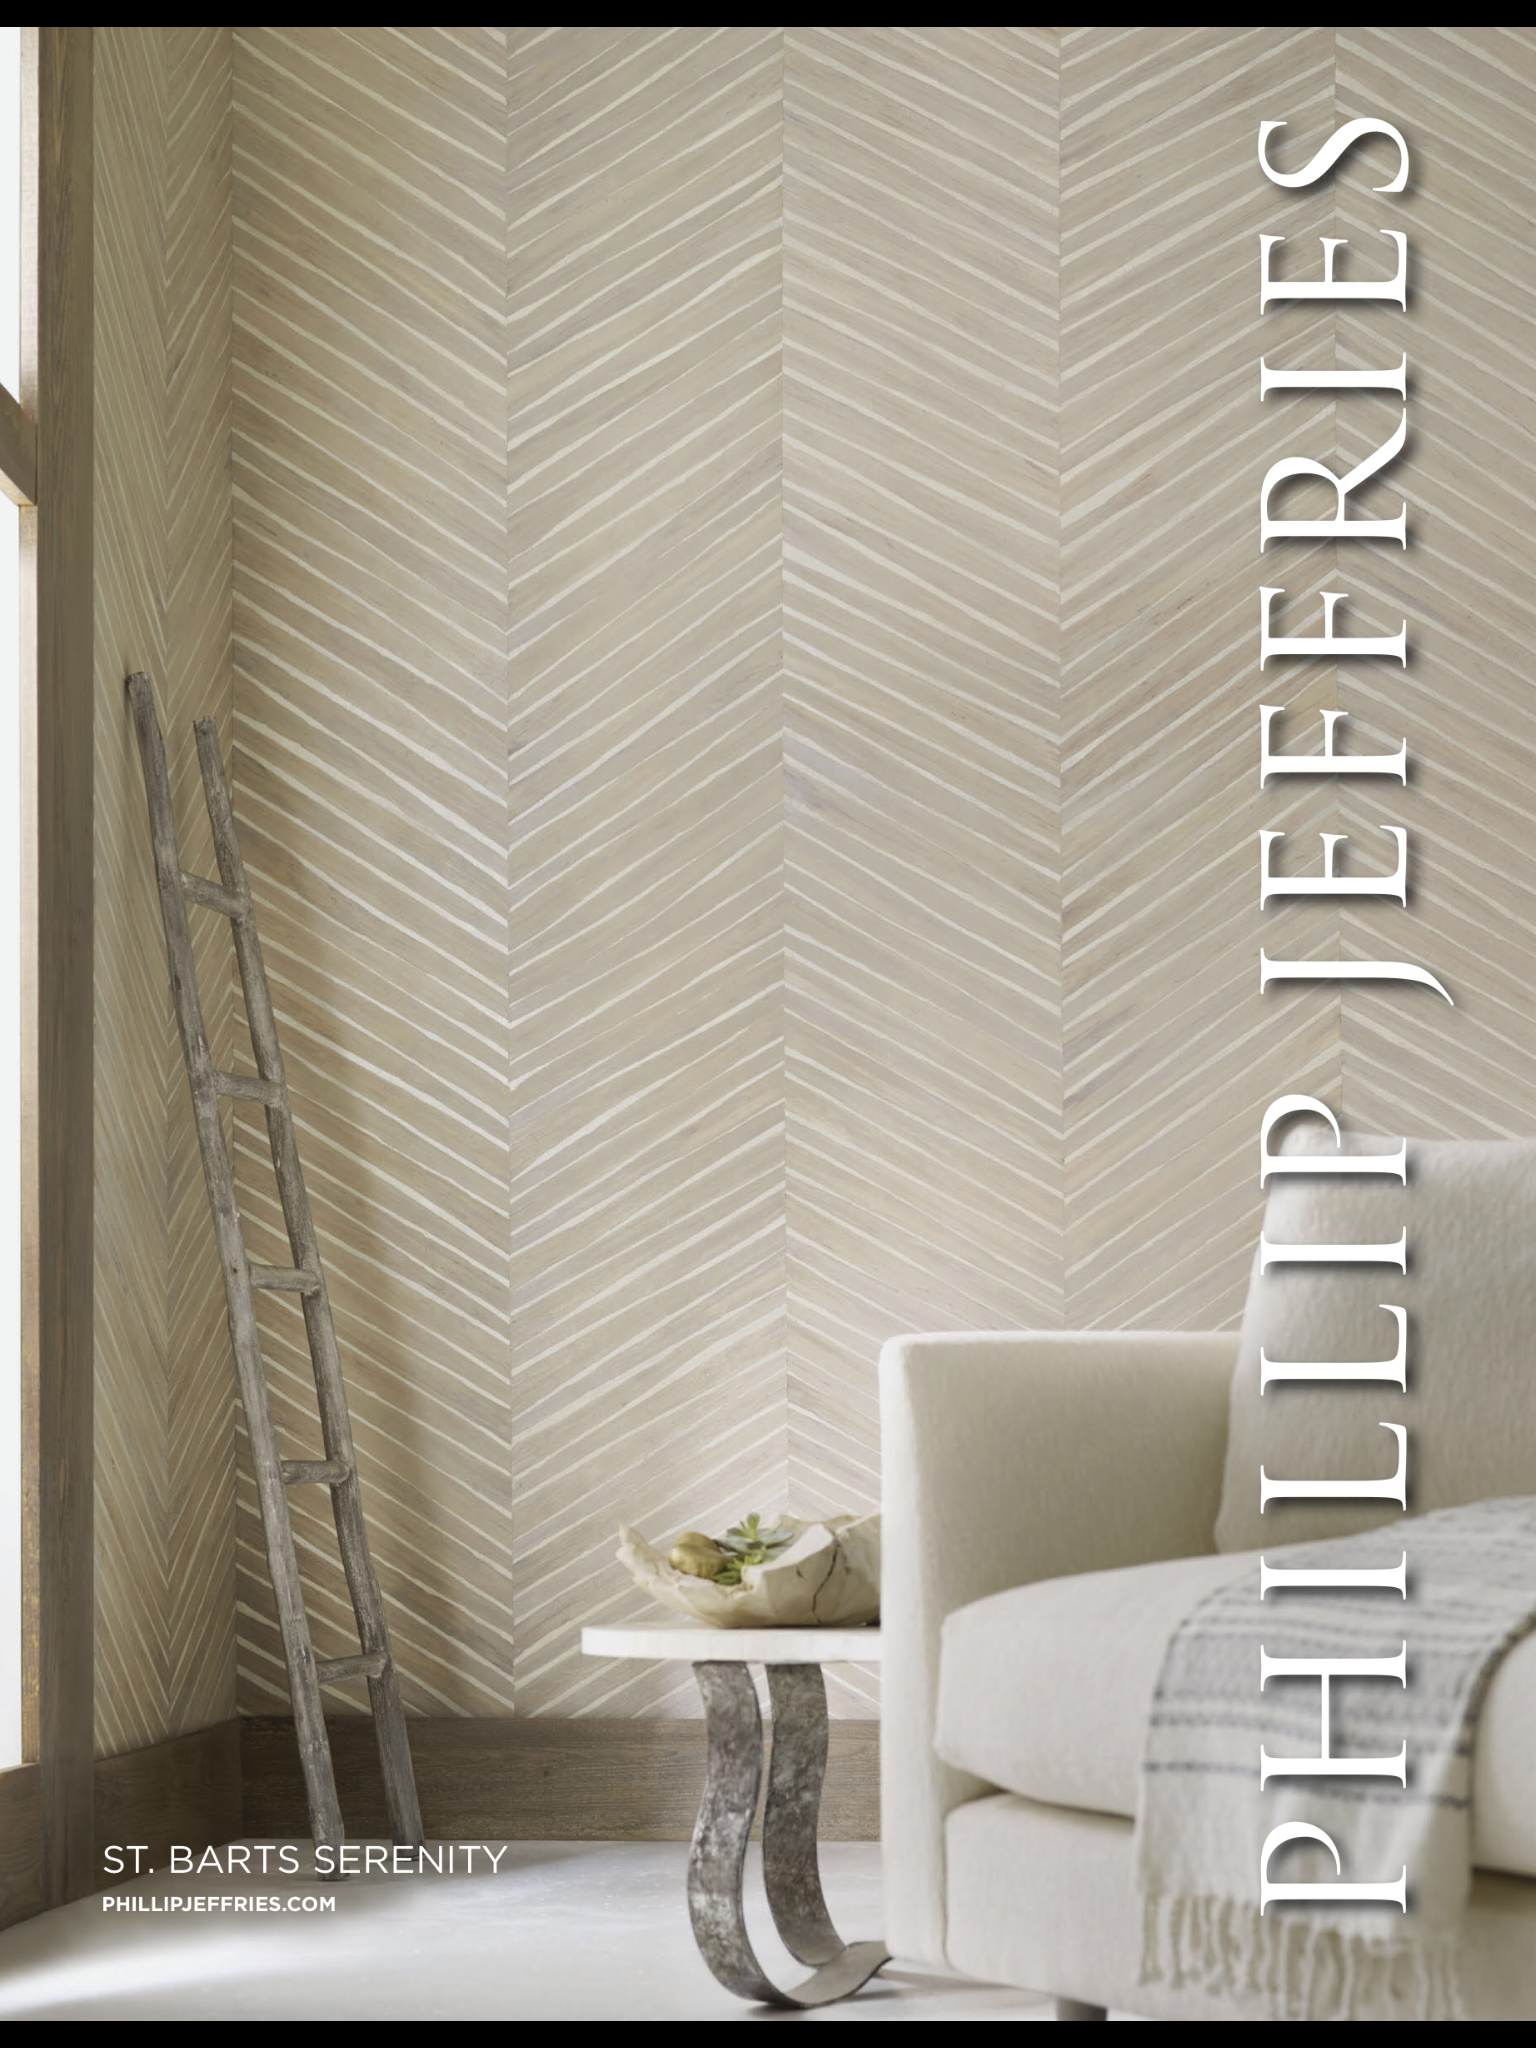 Phillip jeffries wallpaper high end country farmhouse look note the ladder great pattern